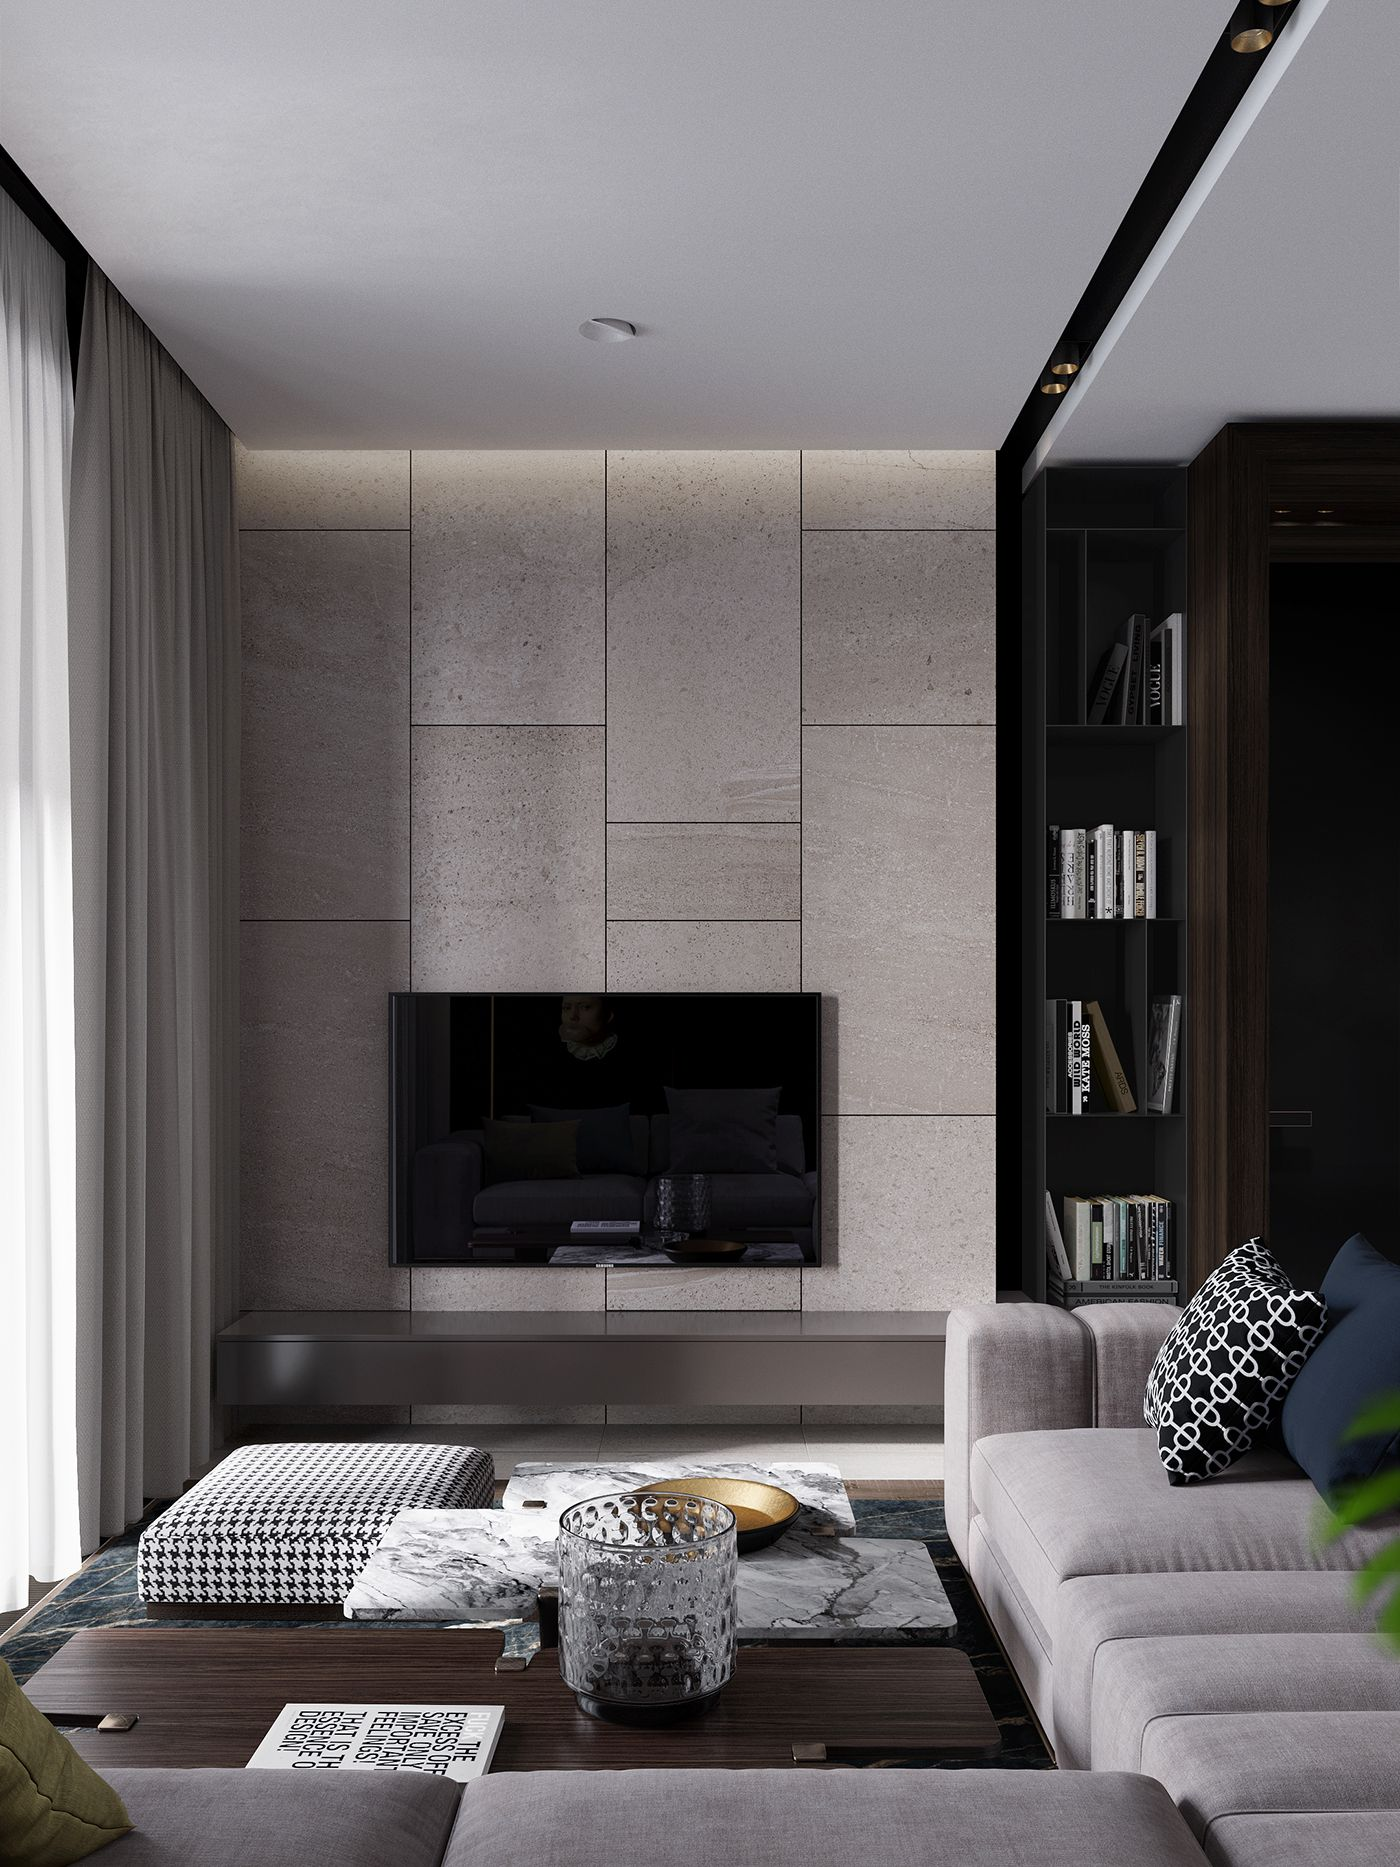 Dark Apartment For Light Pair On Behance Cute Living Room Small Apartment Bedrooms Classy Living Room Living room aesthetic dark